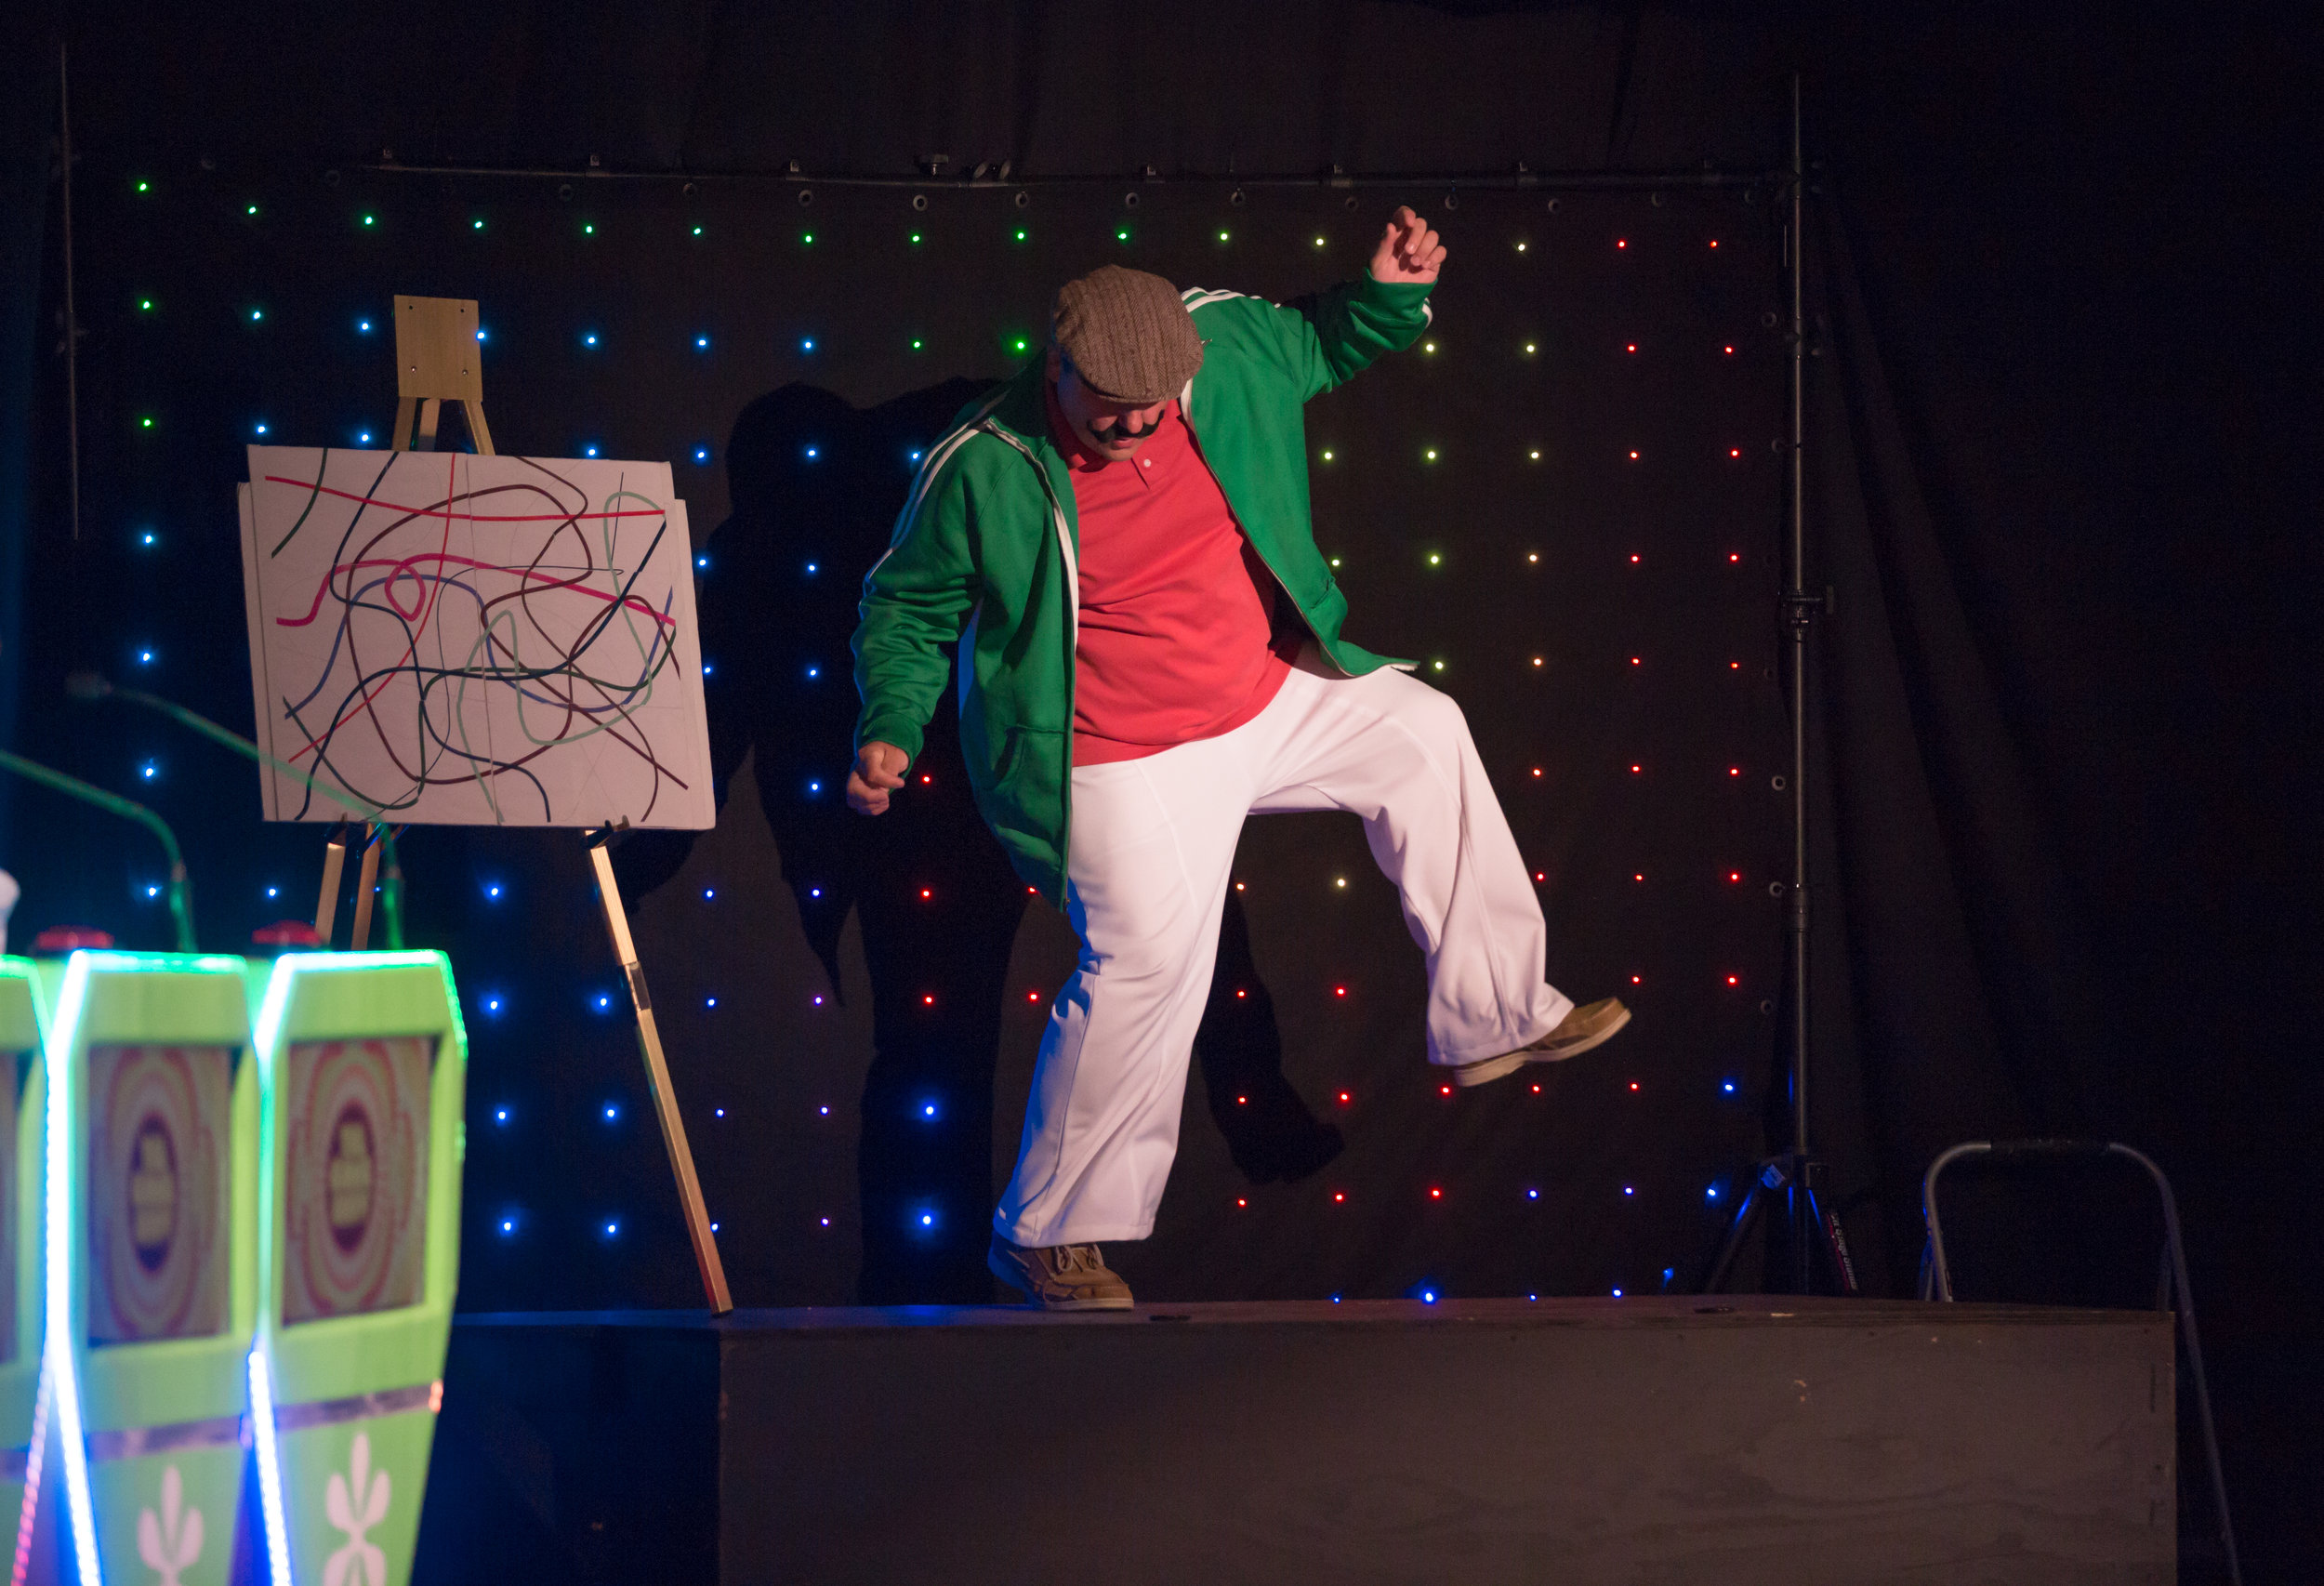 Robert Behnke is the show's dancing machine, busting his moves since 2016.